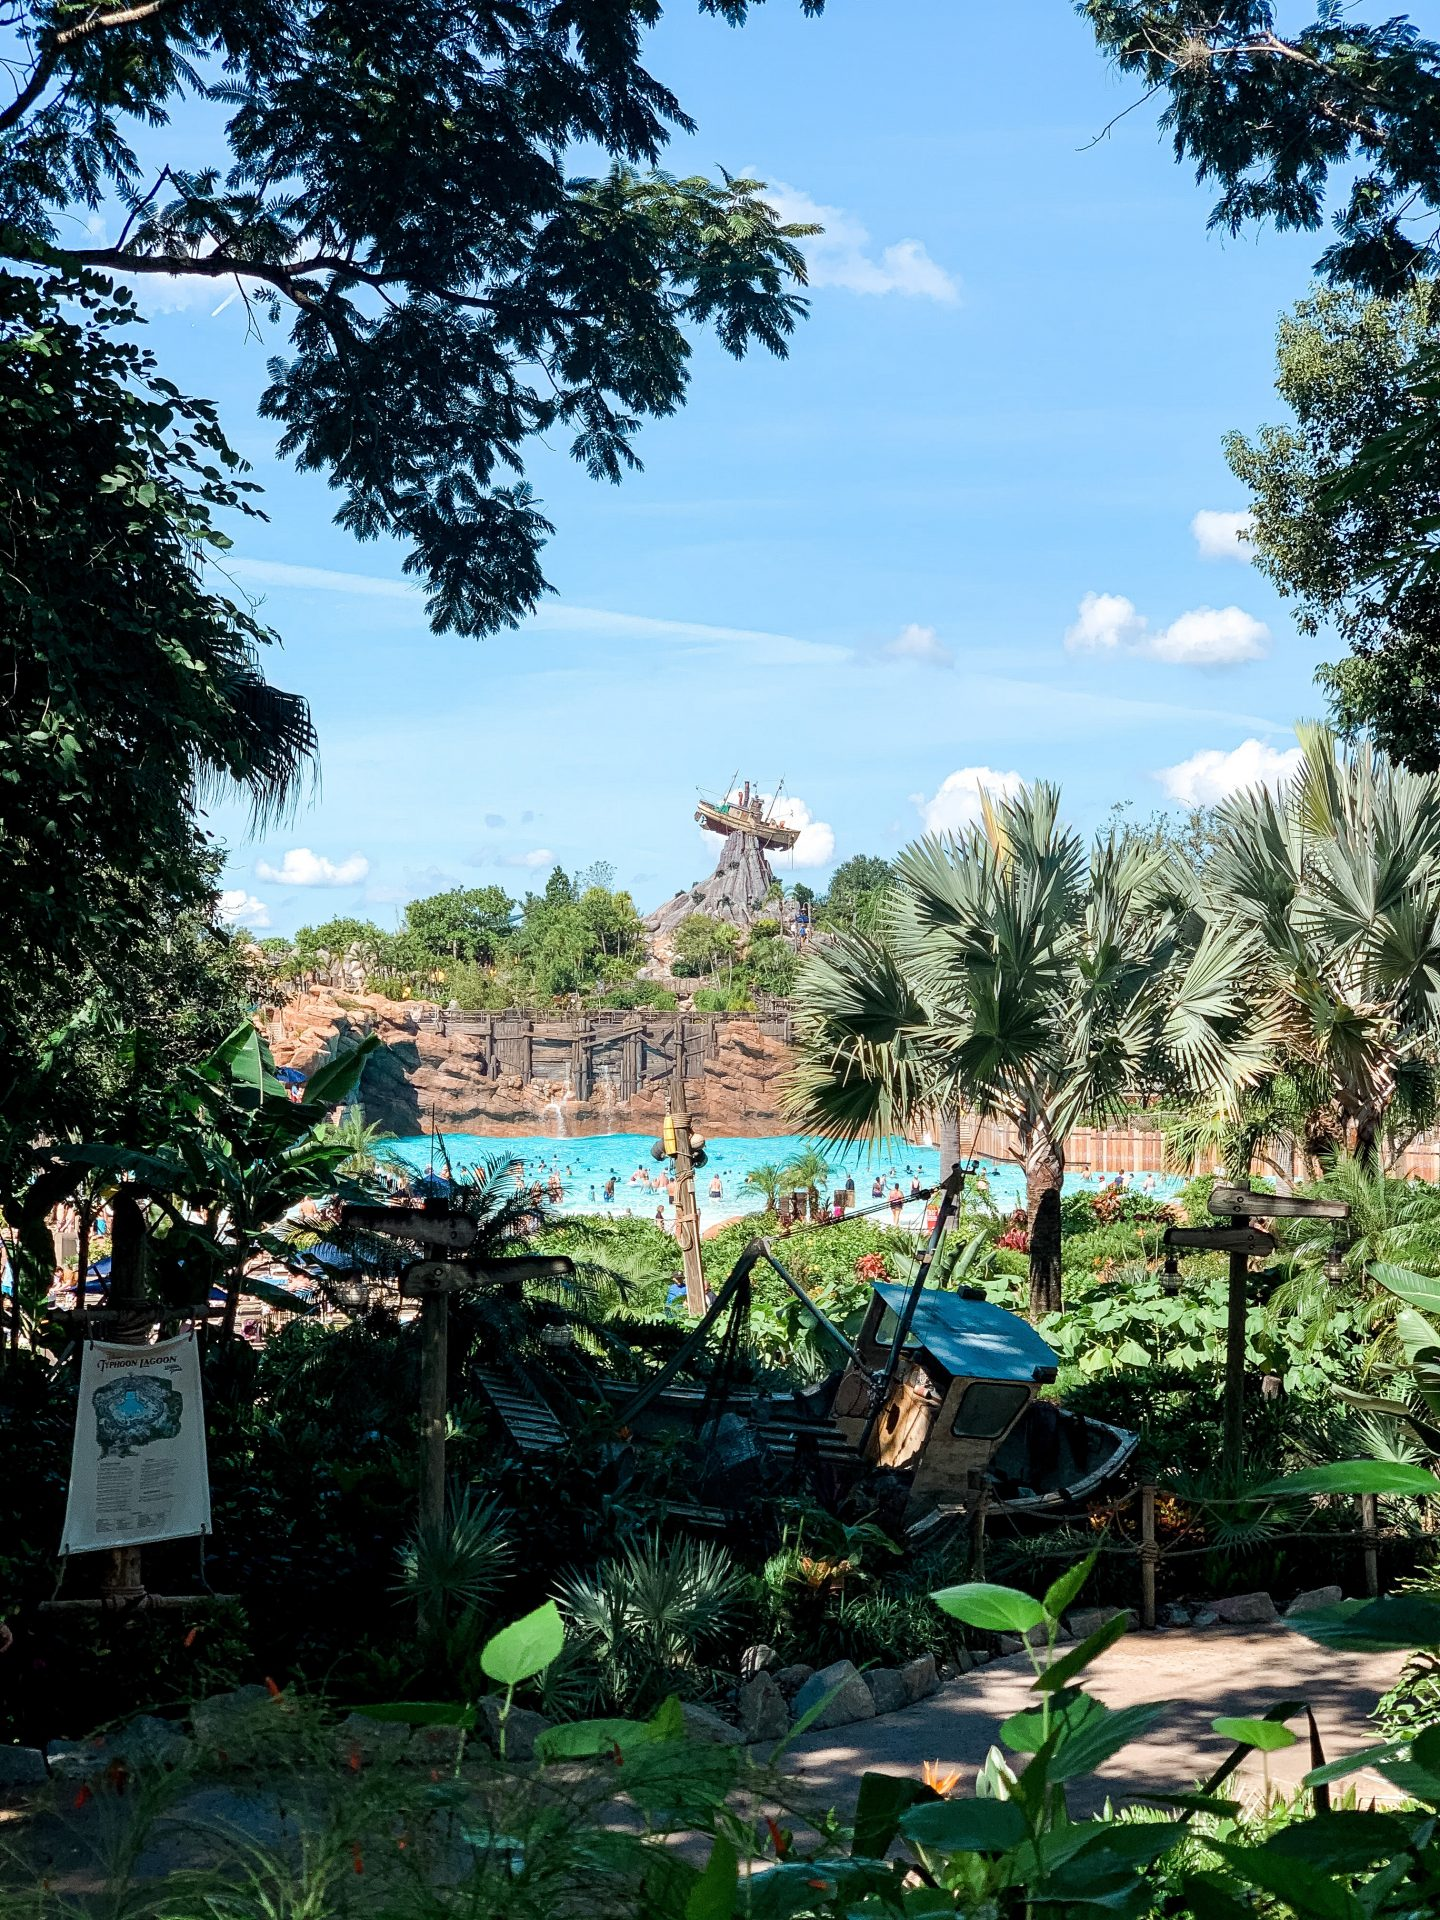 Typhoon Lagoon Disney's water park